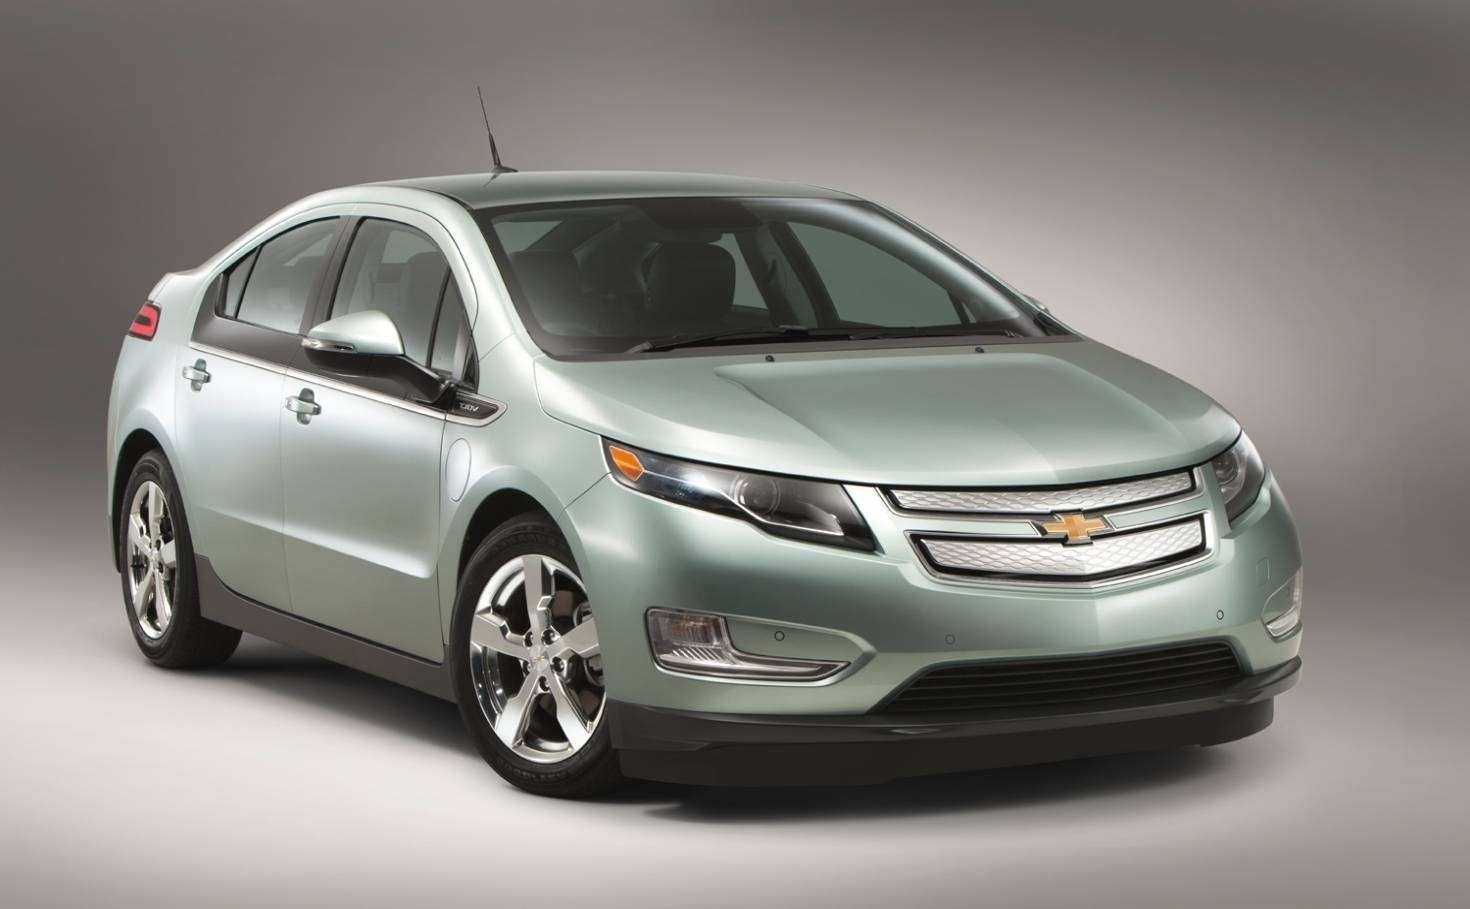 78 The Best 2020 Chevy Volt Redesign And Concept